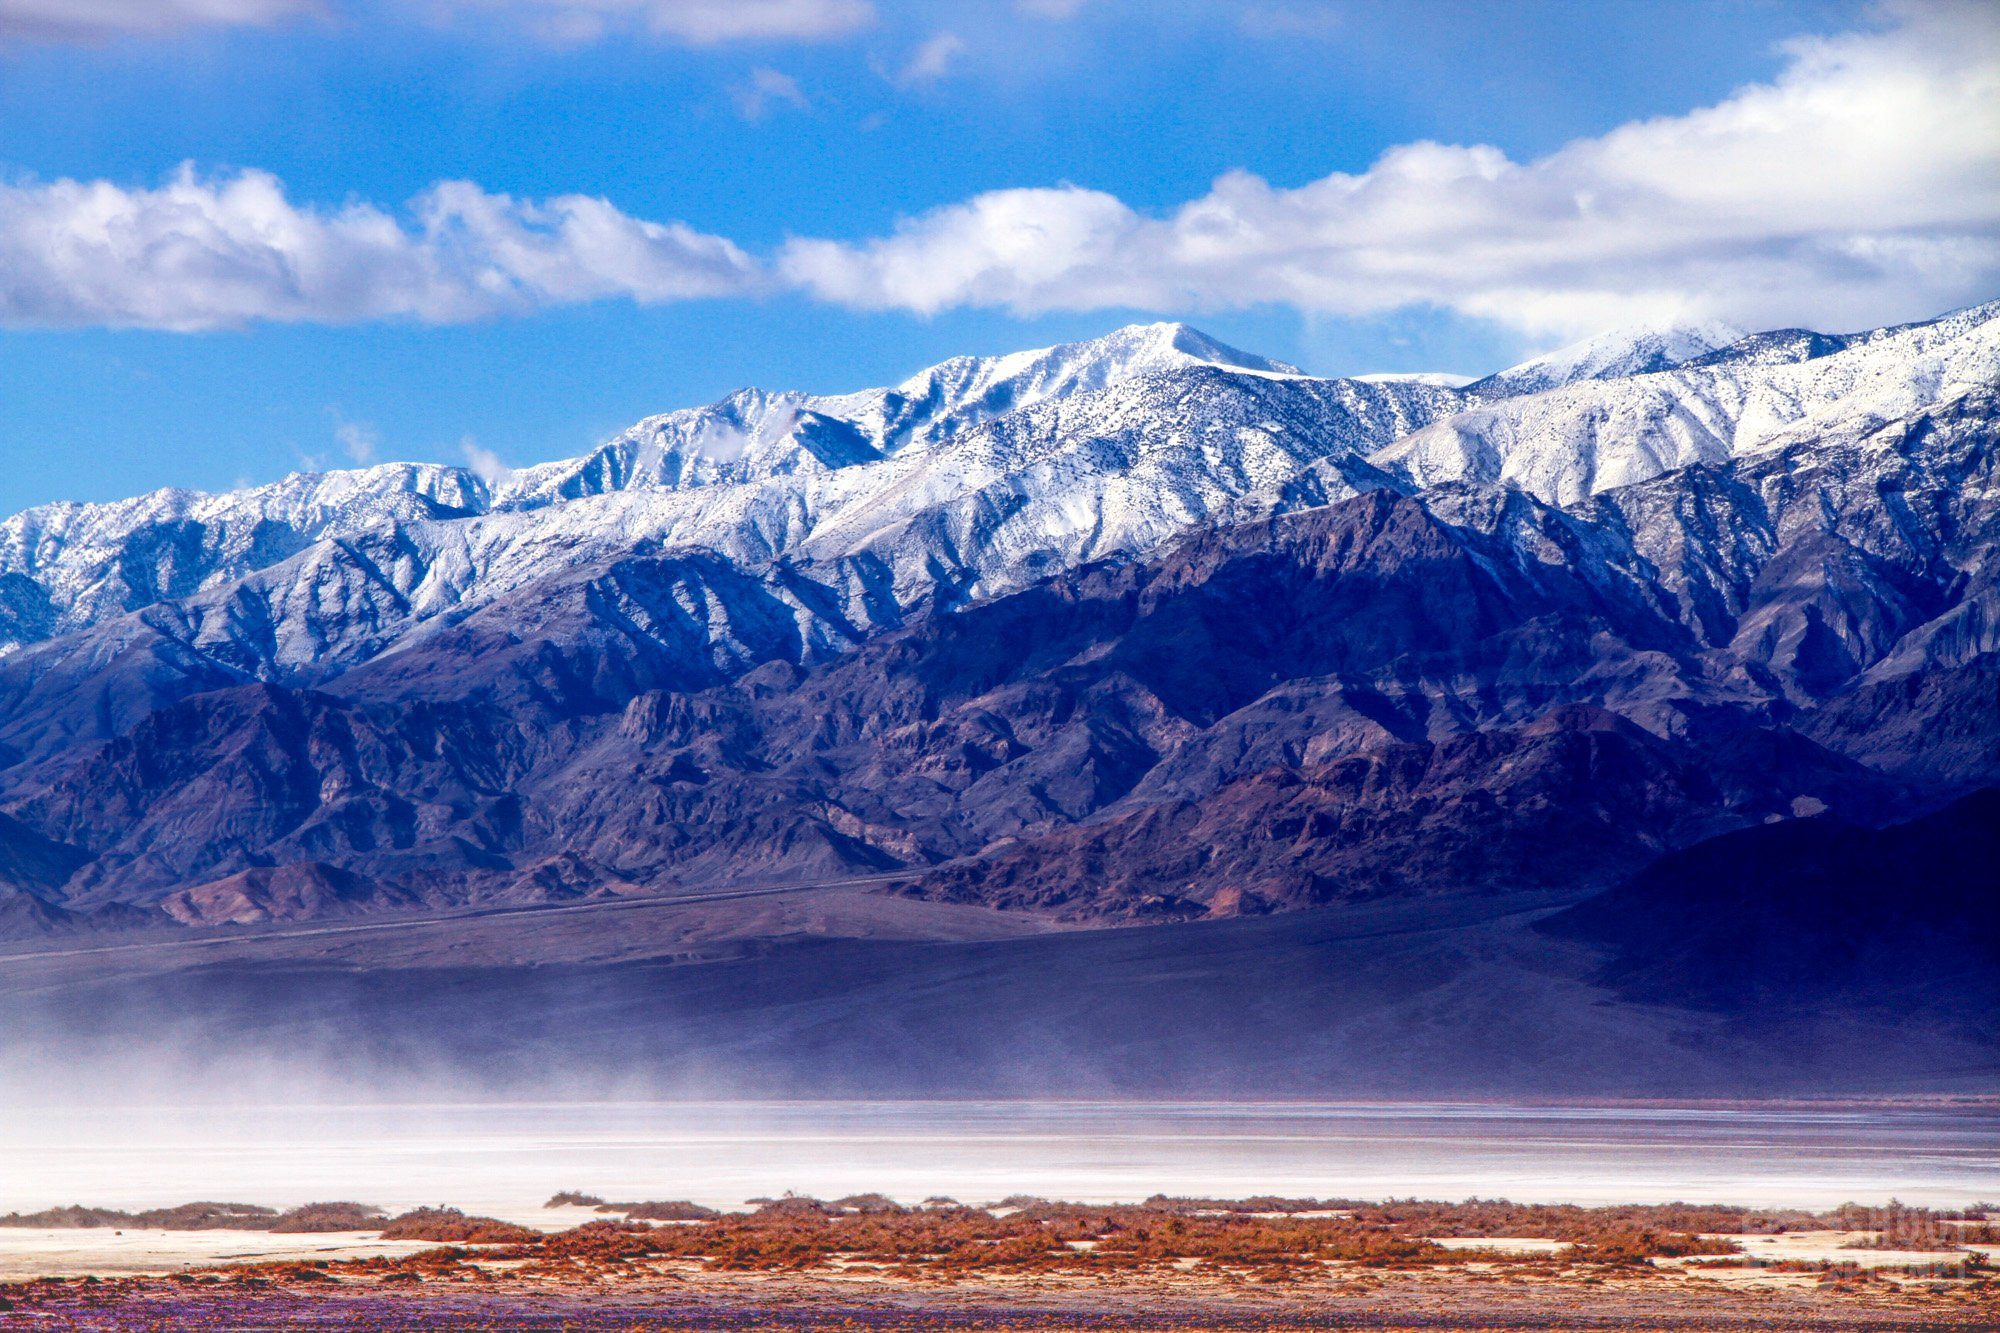 Badwater Basin snow-capped mountains, Death Valley California